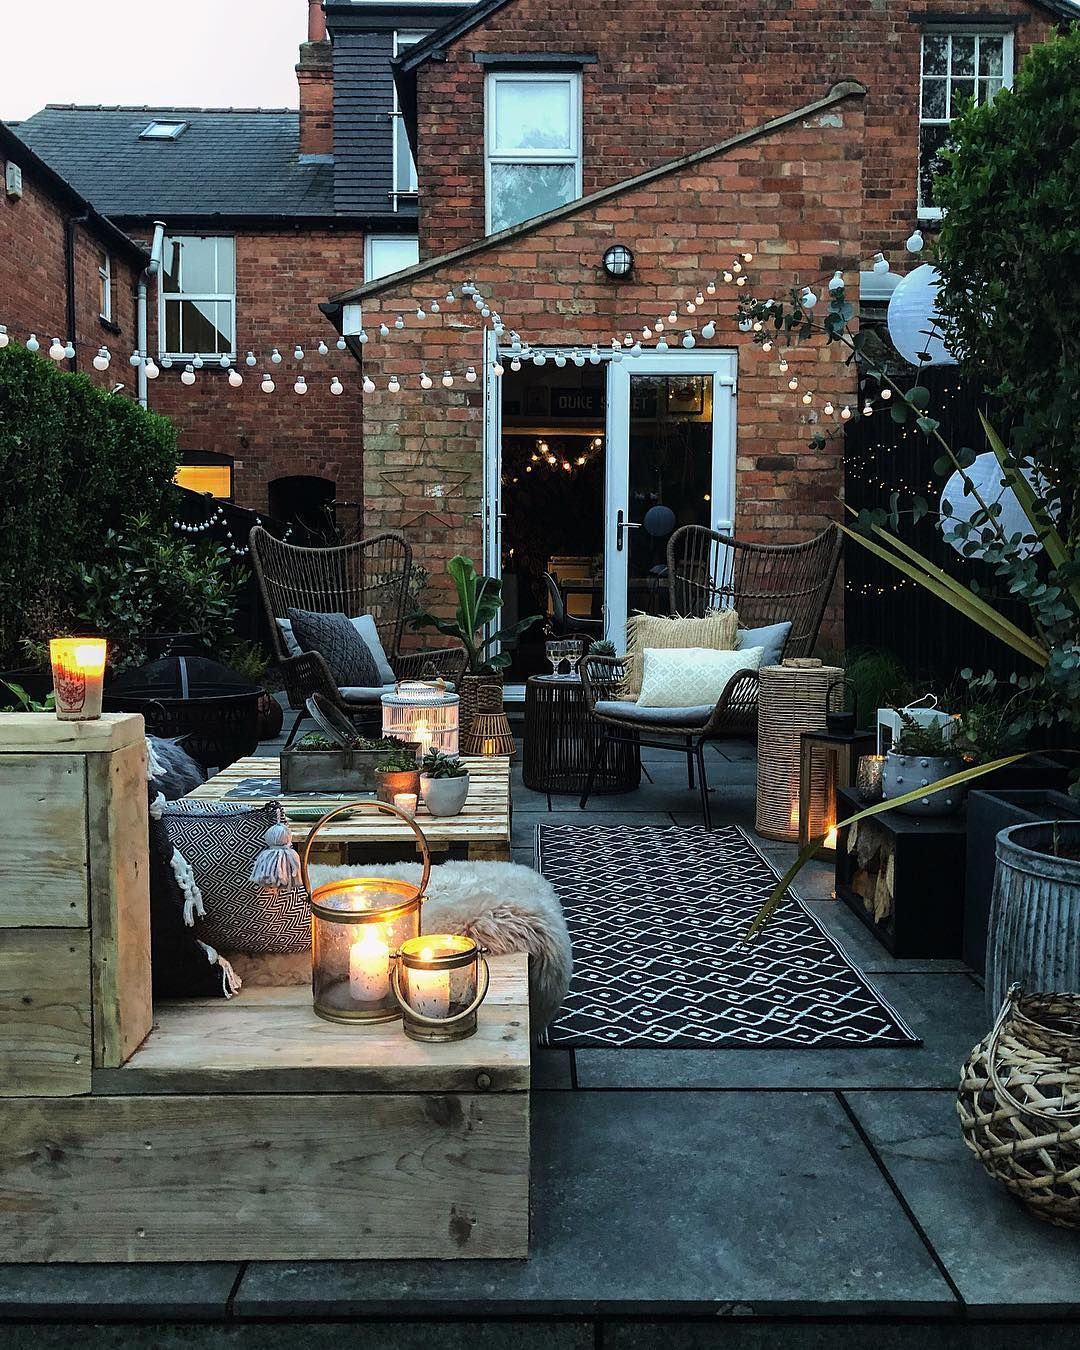 Stunning And Cosy Patio With DIY Pallet Sofas And Festoon